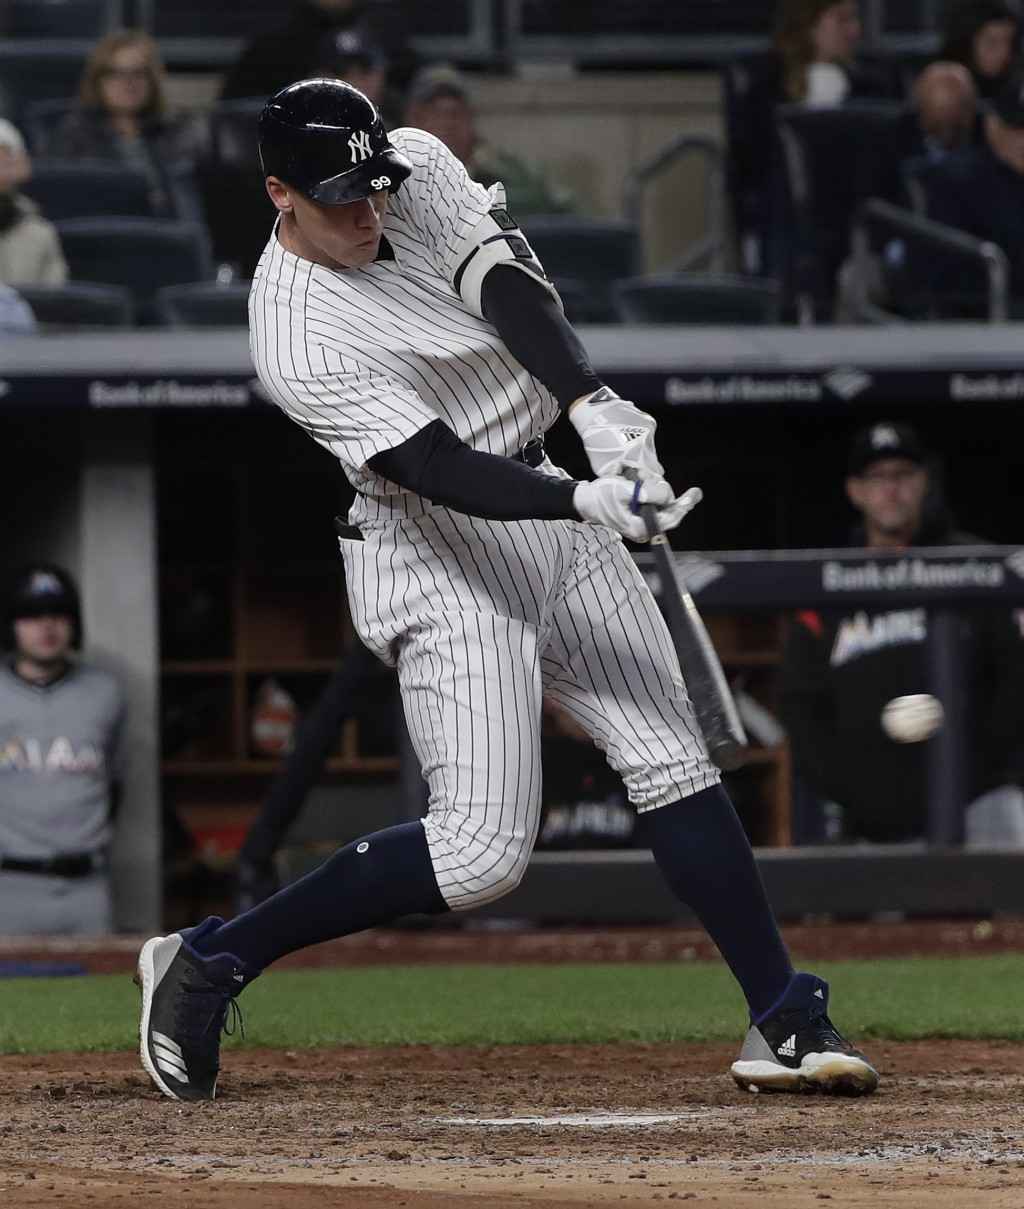 New York Yankees' Aaron Judge drives in a run on a base hit to left field during the fifth inning of a baseball game against the Miami Marlins, Monday